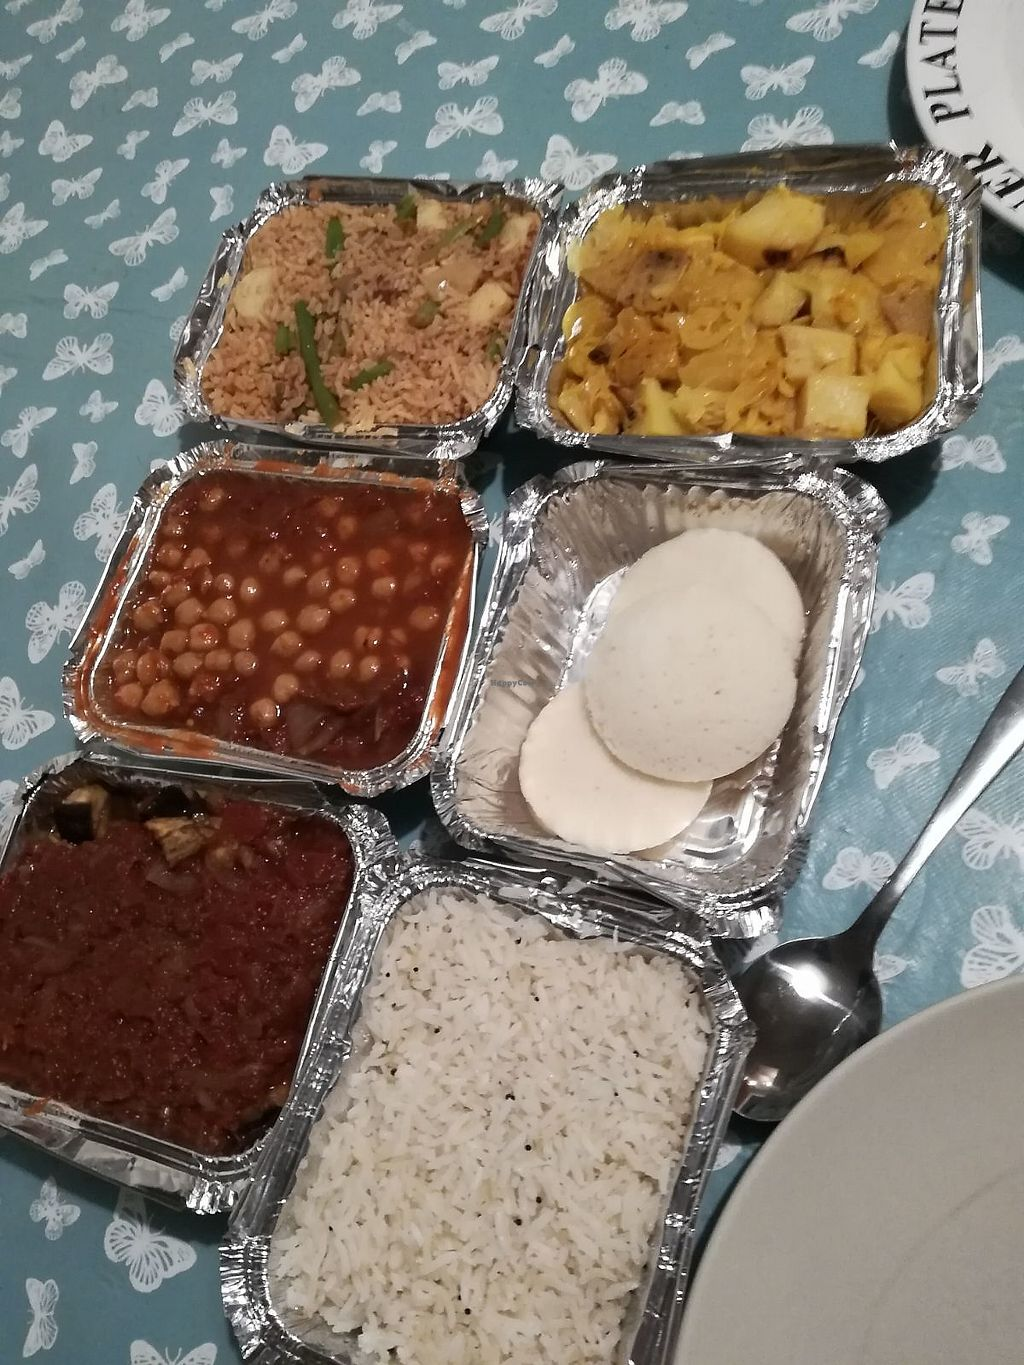 "Photo of Vegan Takeaway  by <a href=""/members/profile/starcide"">starcide</a> <br/>Clockwise from top left : biryani, aloo rai, idly, coconut rice, brinjal masala,  chana masala,  <br/> January 20, 2018  - <a href='/contact/abuse/image/108949/348964'>Report</a>"